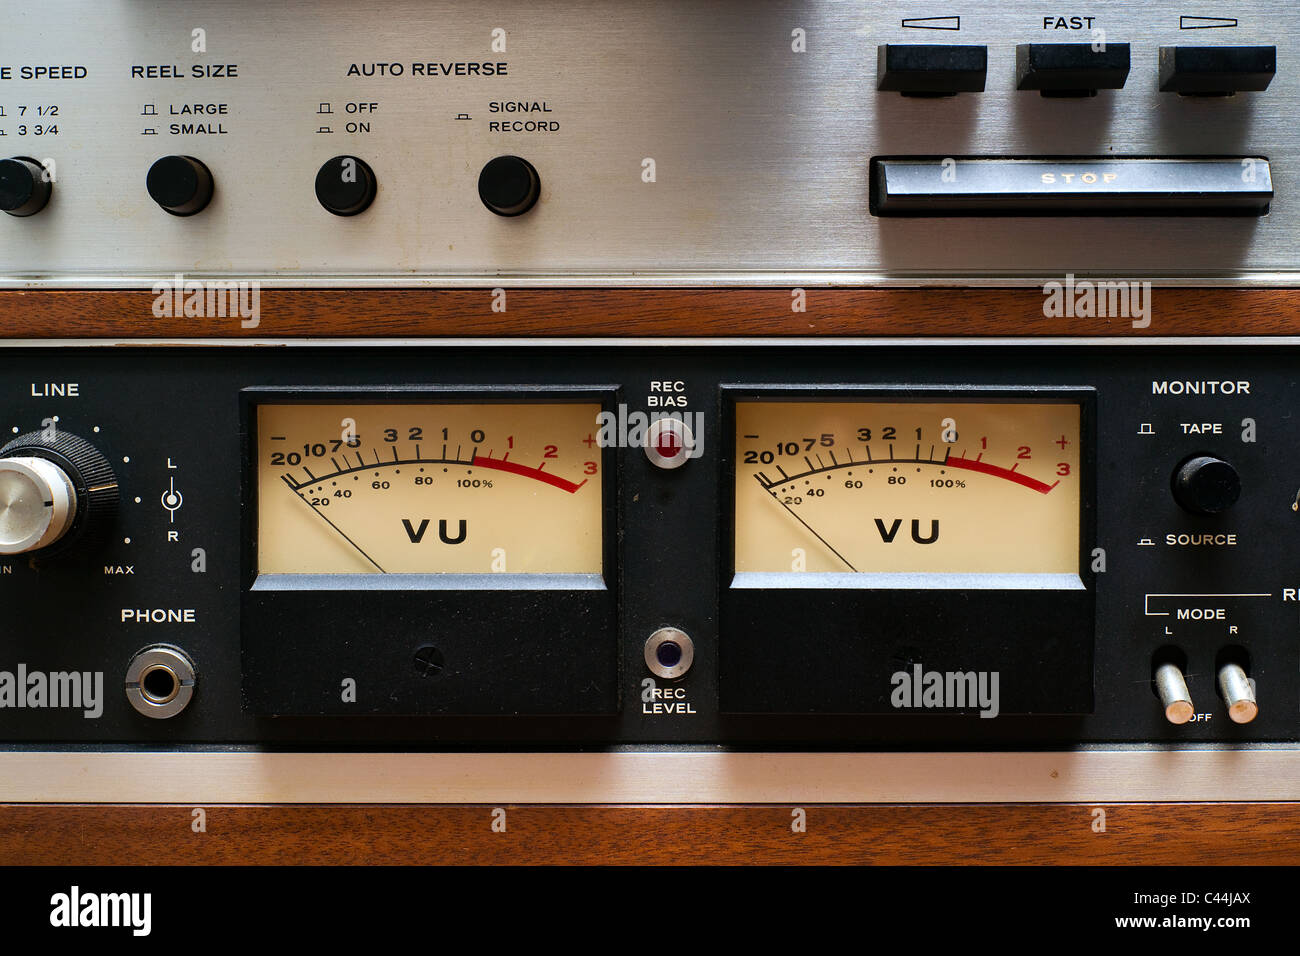 Stereo VU meters on a portion of an old, dirty, vintage, analog reel-to-reel tape deck. - Stock Image